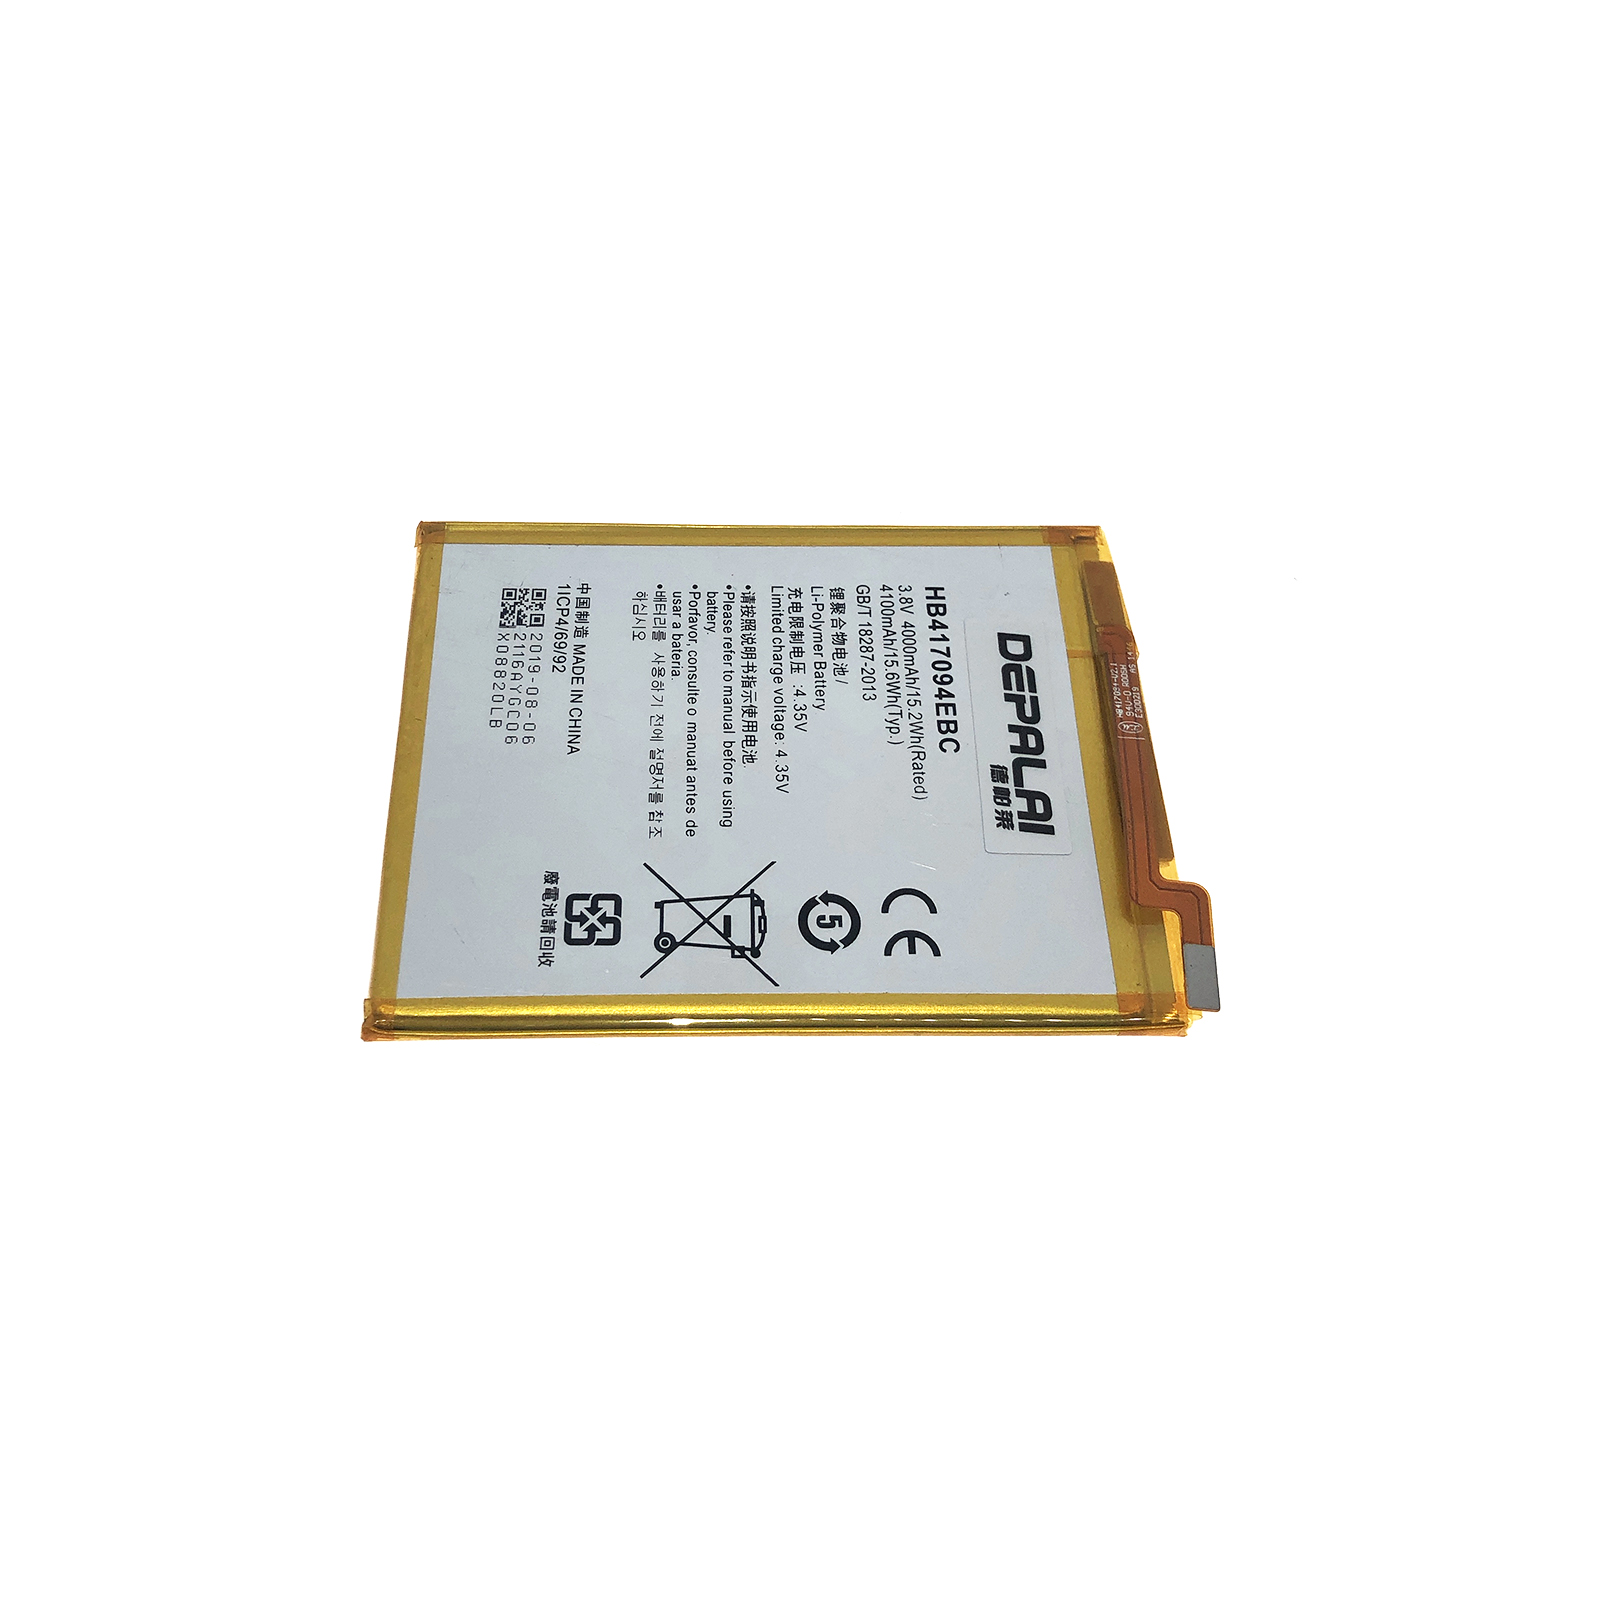 HB417094EBC Replacement Battery For Huawei Mate7 MT7-TL10 Mate 7 MT7- CL00 Battery Mate 7